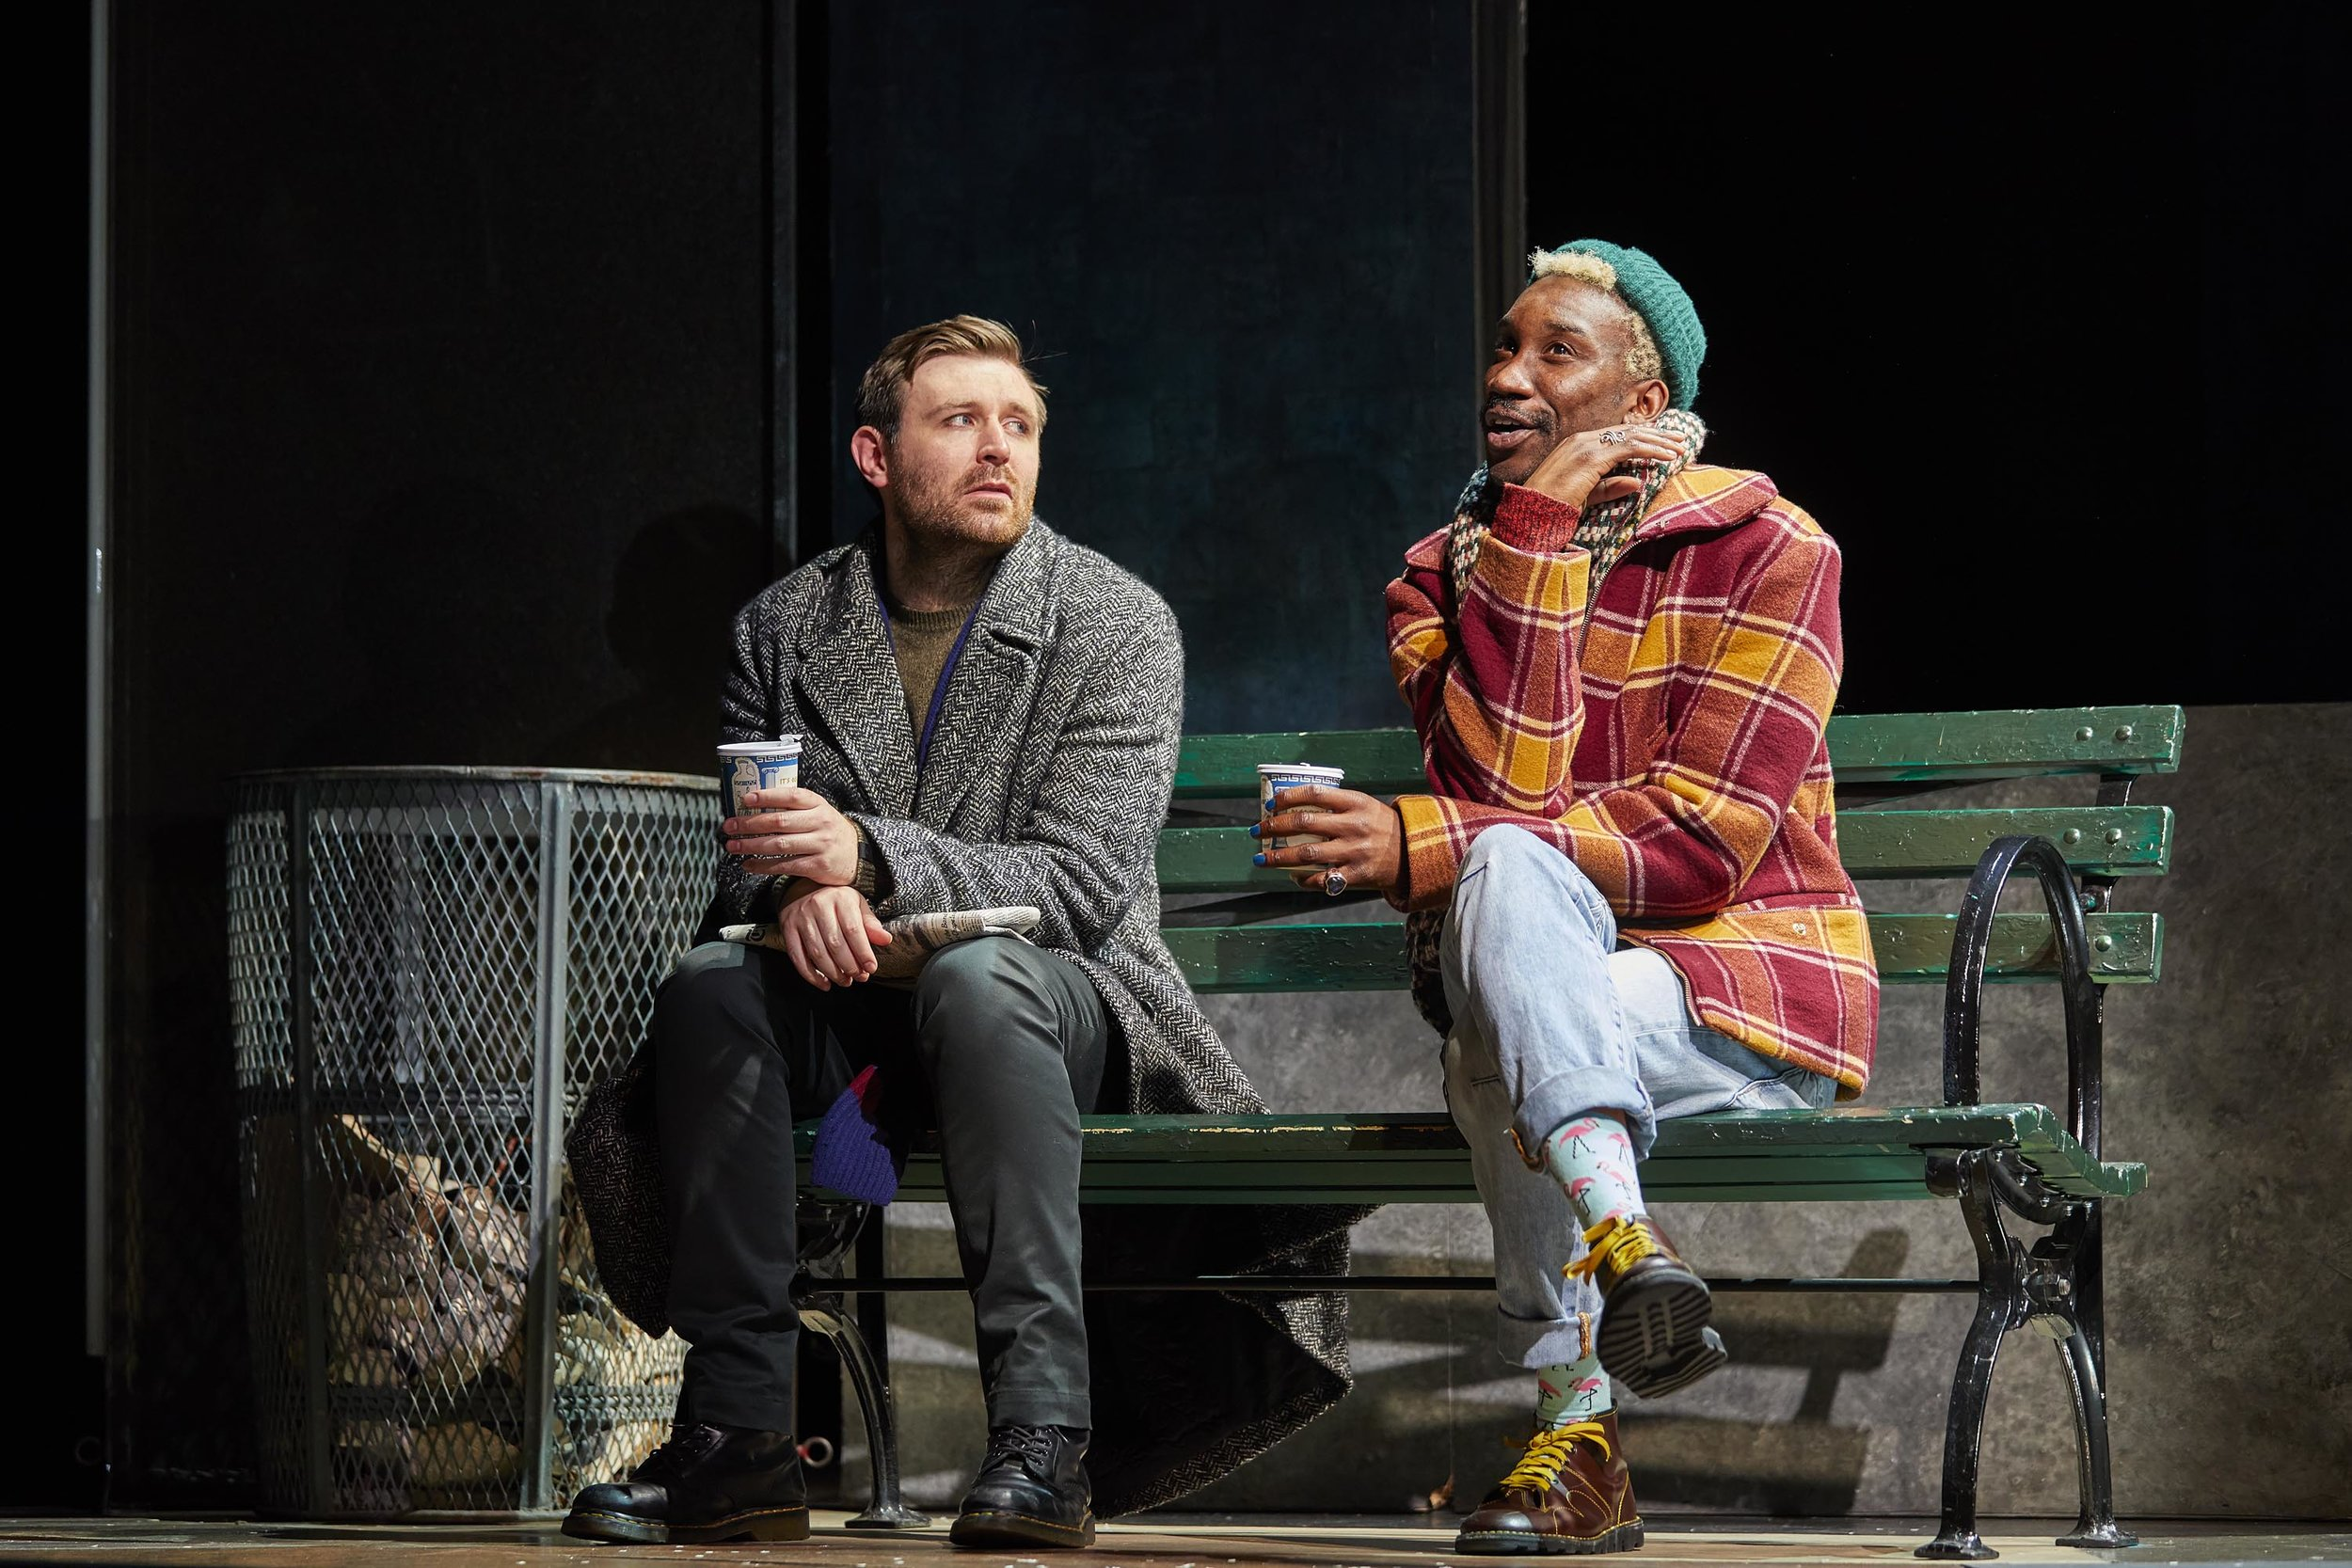 Simplicity Is Key for the Angels in America Set - We spoke to Edward Pierce, the TONY nominated scenic designer for Angels in America about the challenges of transferring a show from the West End and where he draws his inspiration from.